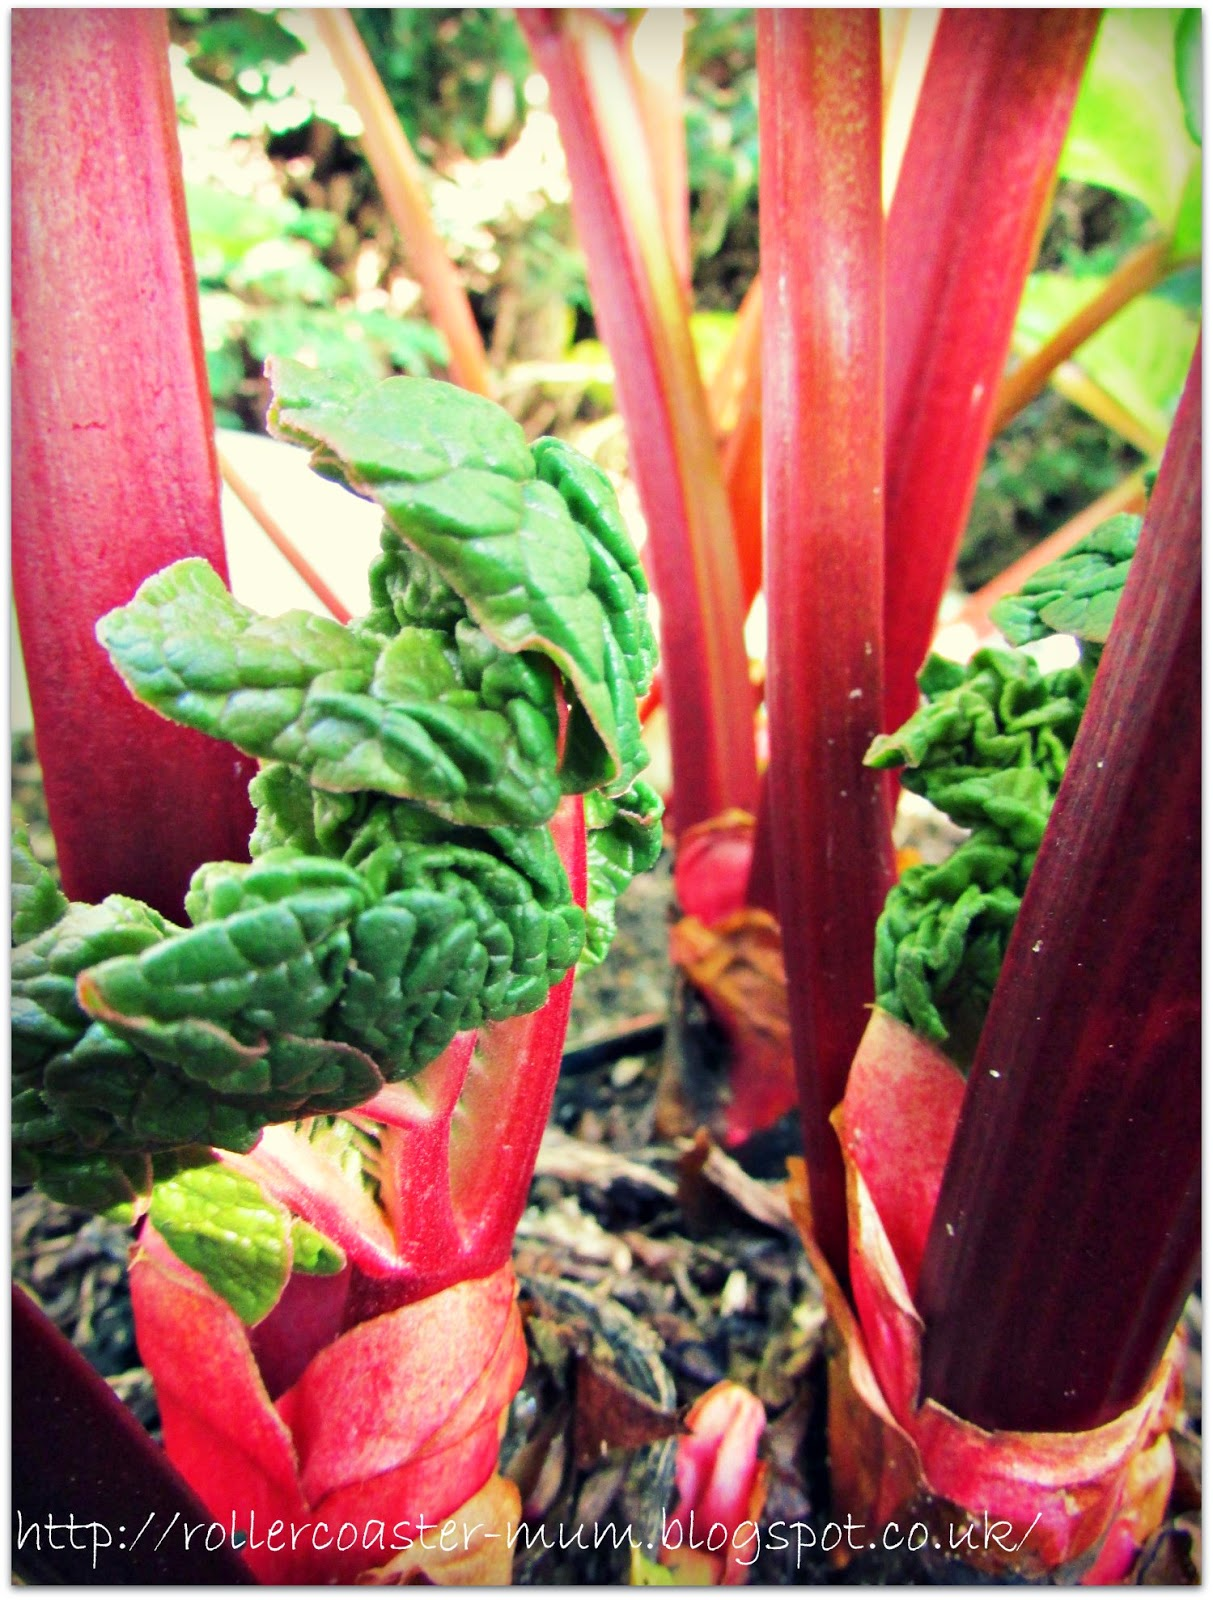 red rhubarb stalks ready to pick